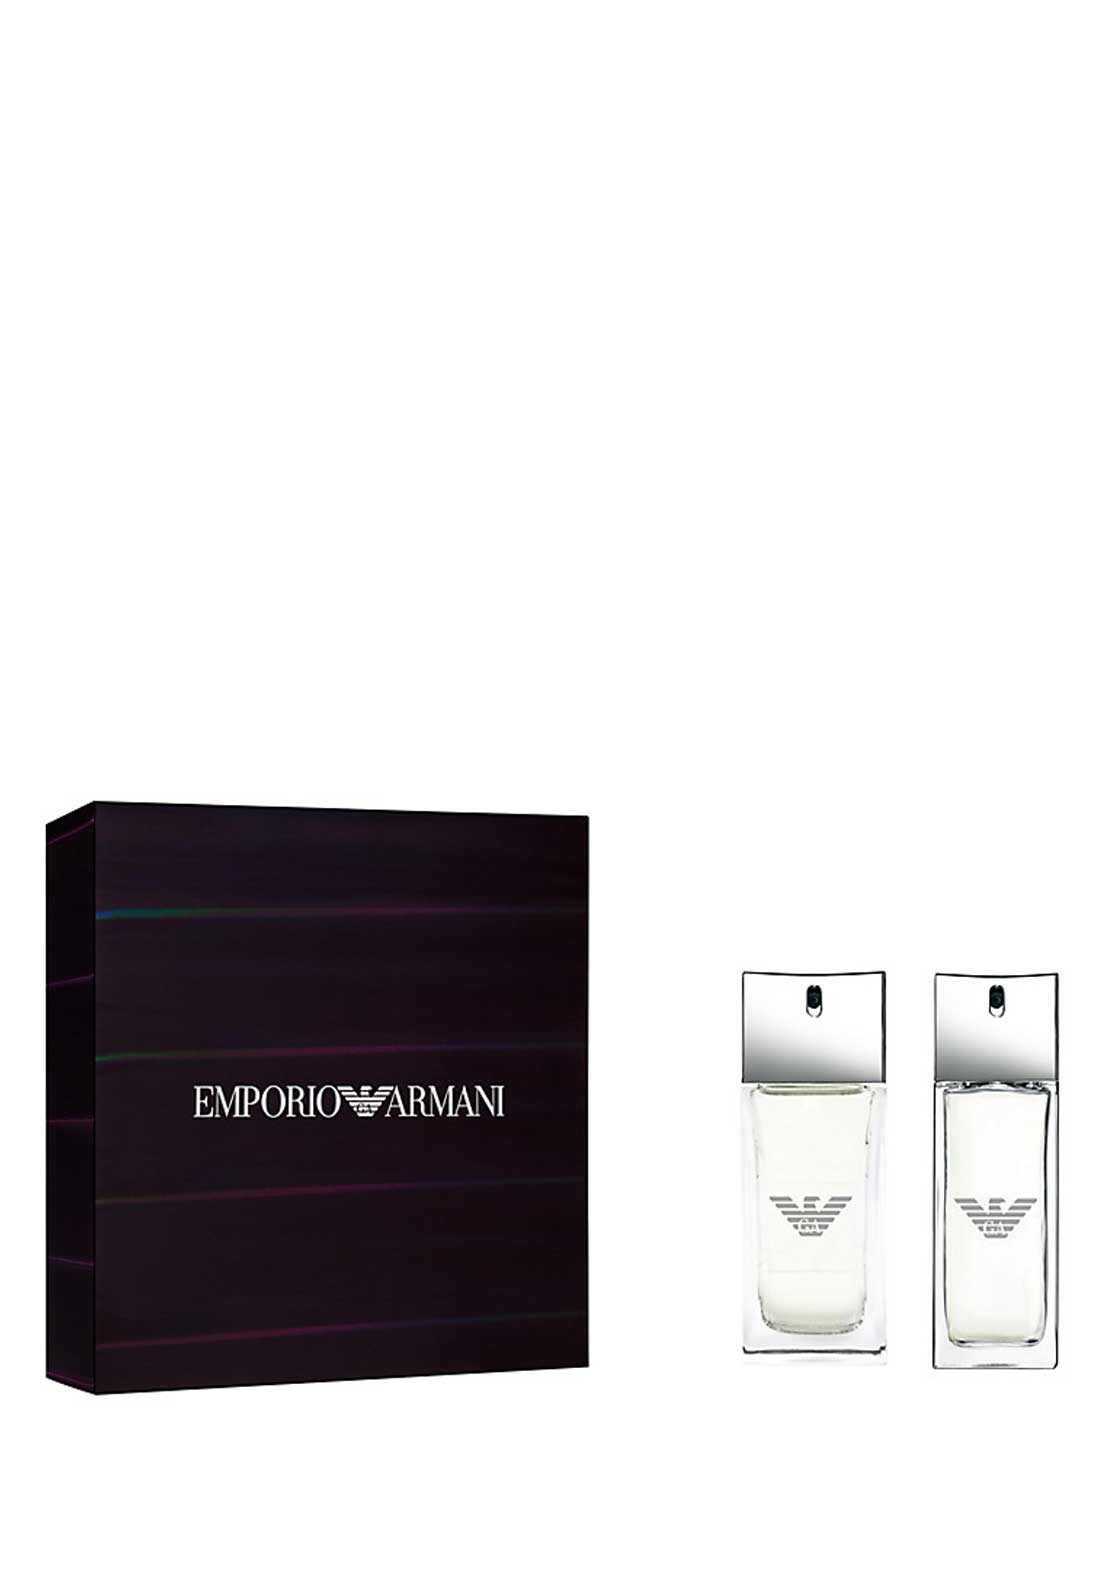 Emporio Armani Diamonds for Men Gift Set, 50ml